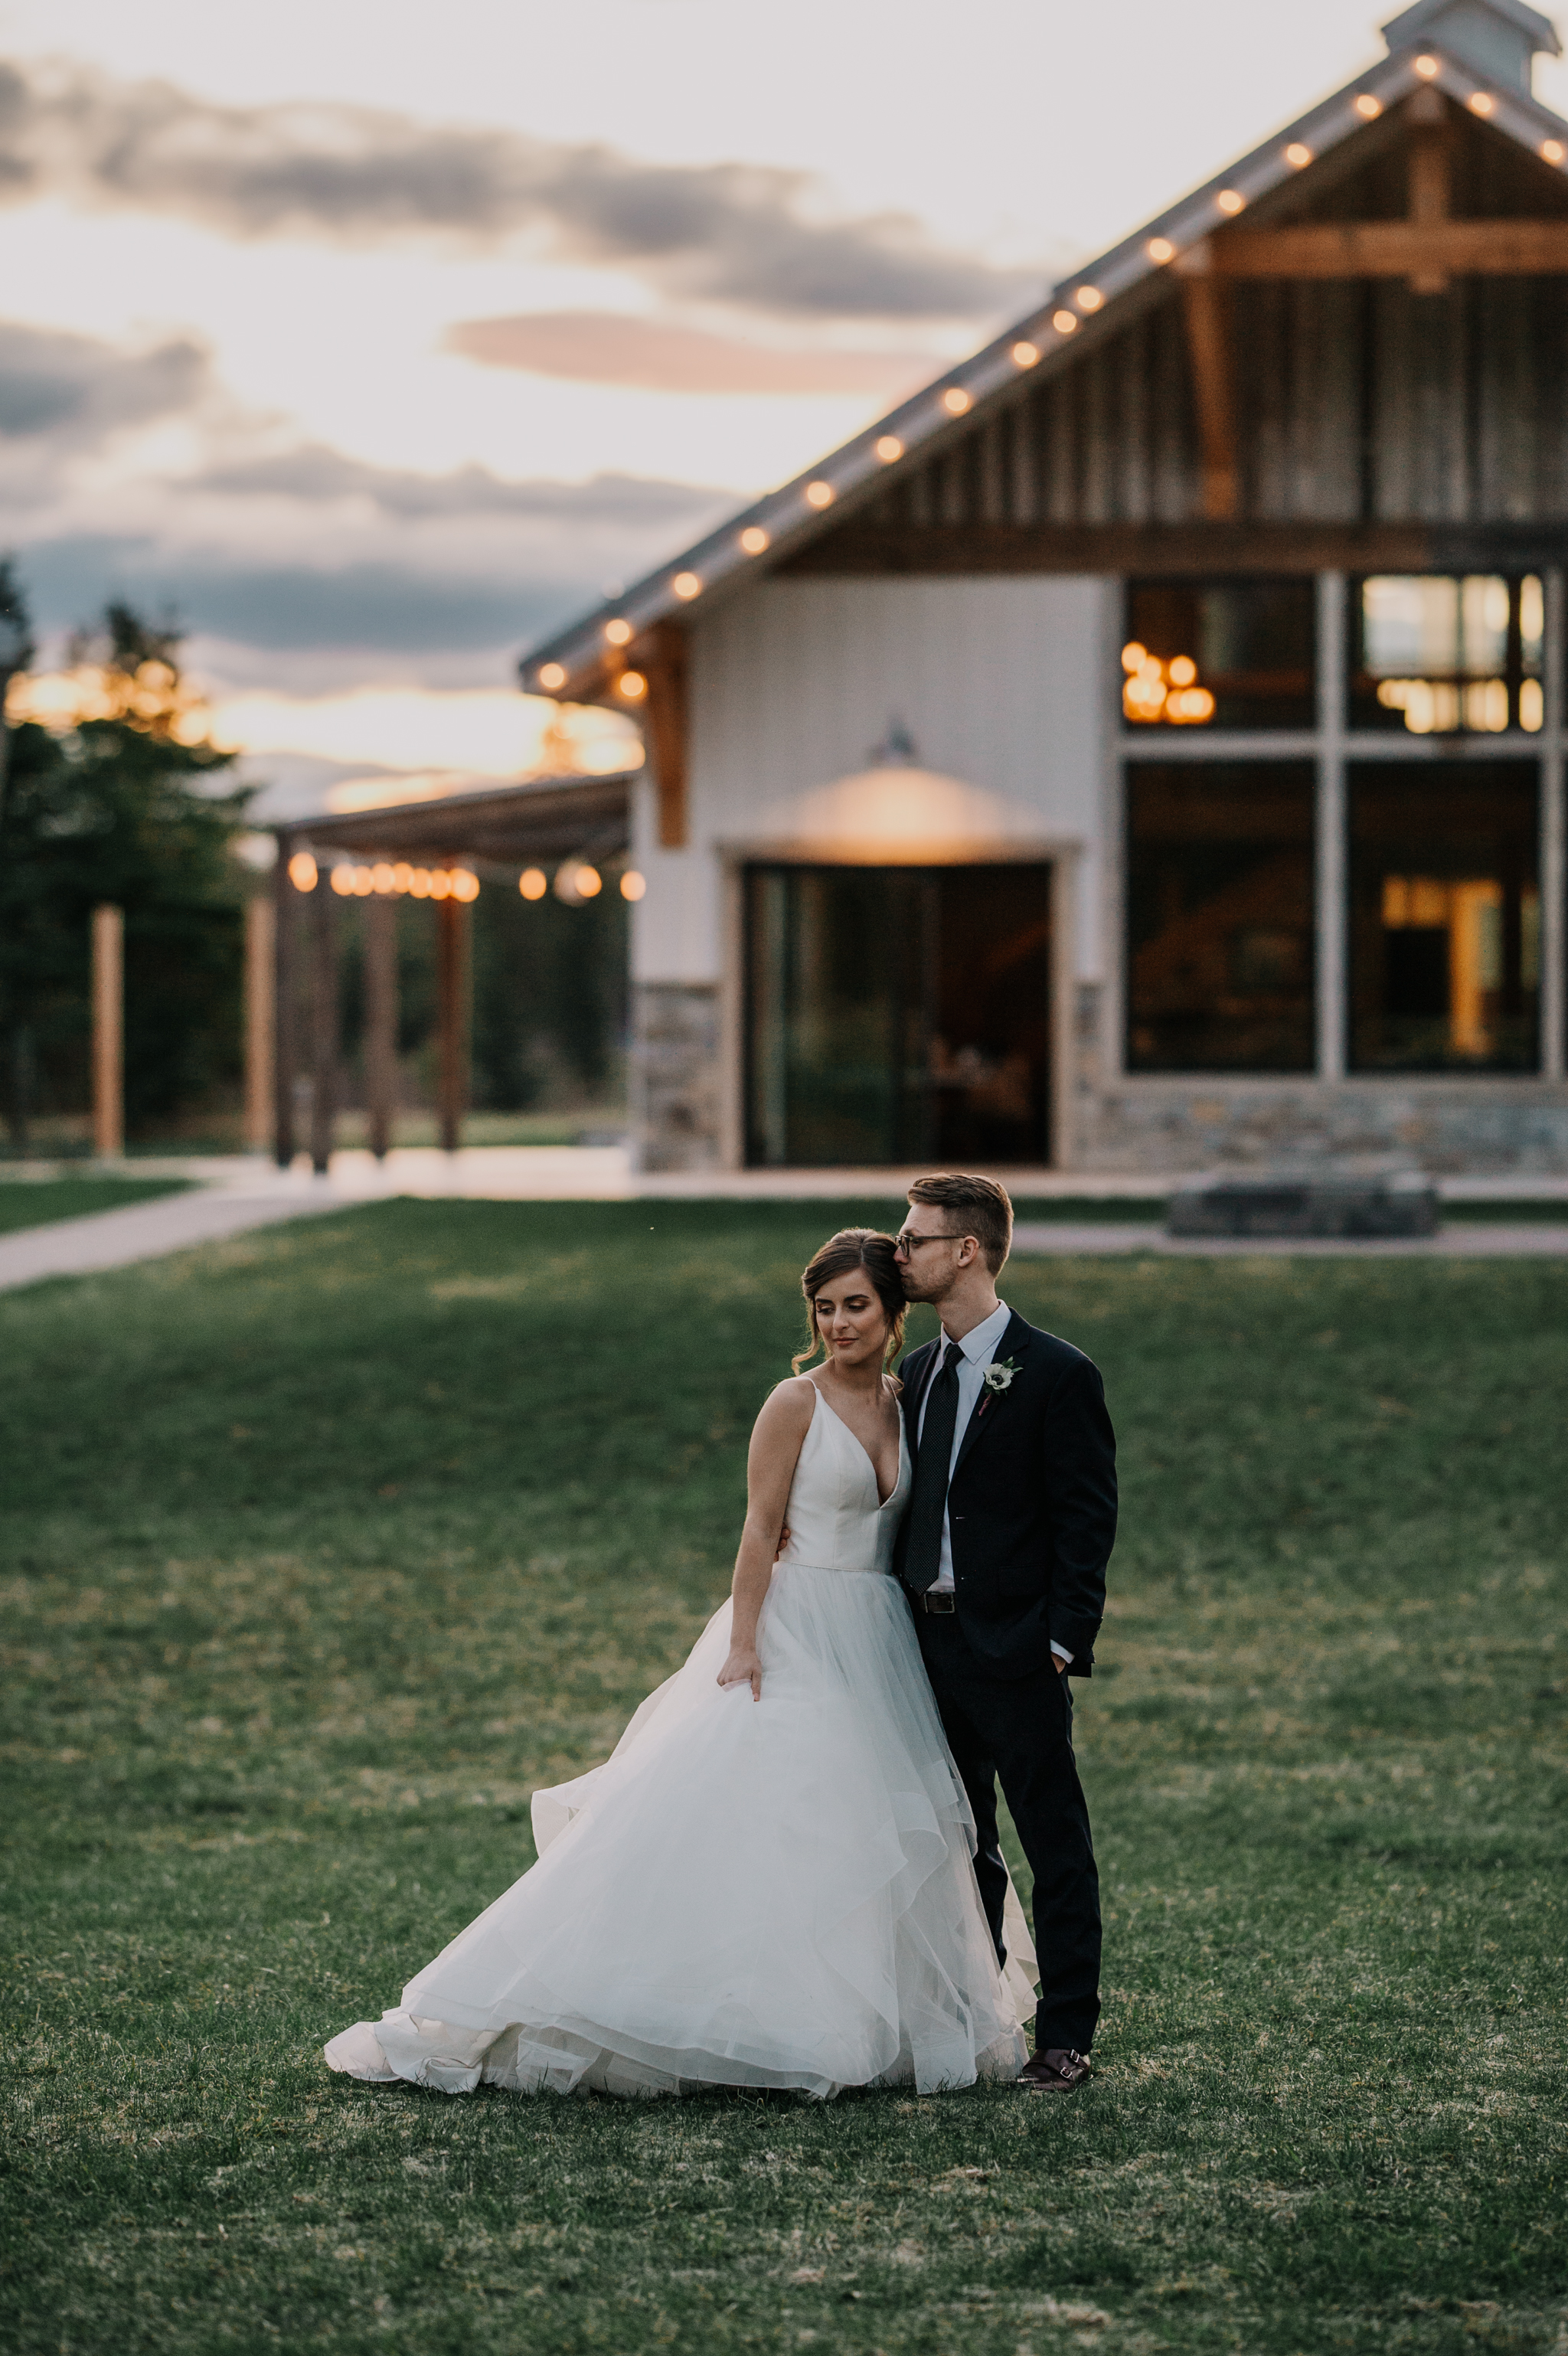 Jewel Tone Wedding Styled Shoot_Silver Knot_Montana Wedding Planner_Montana Wedding Photographer_Montana Wedding Videography_Honeybee Weddings-1545.jpg